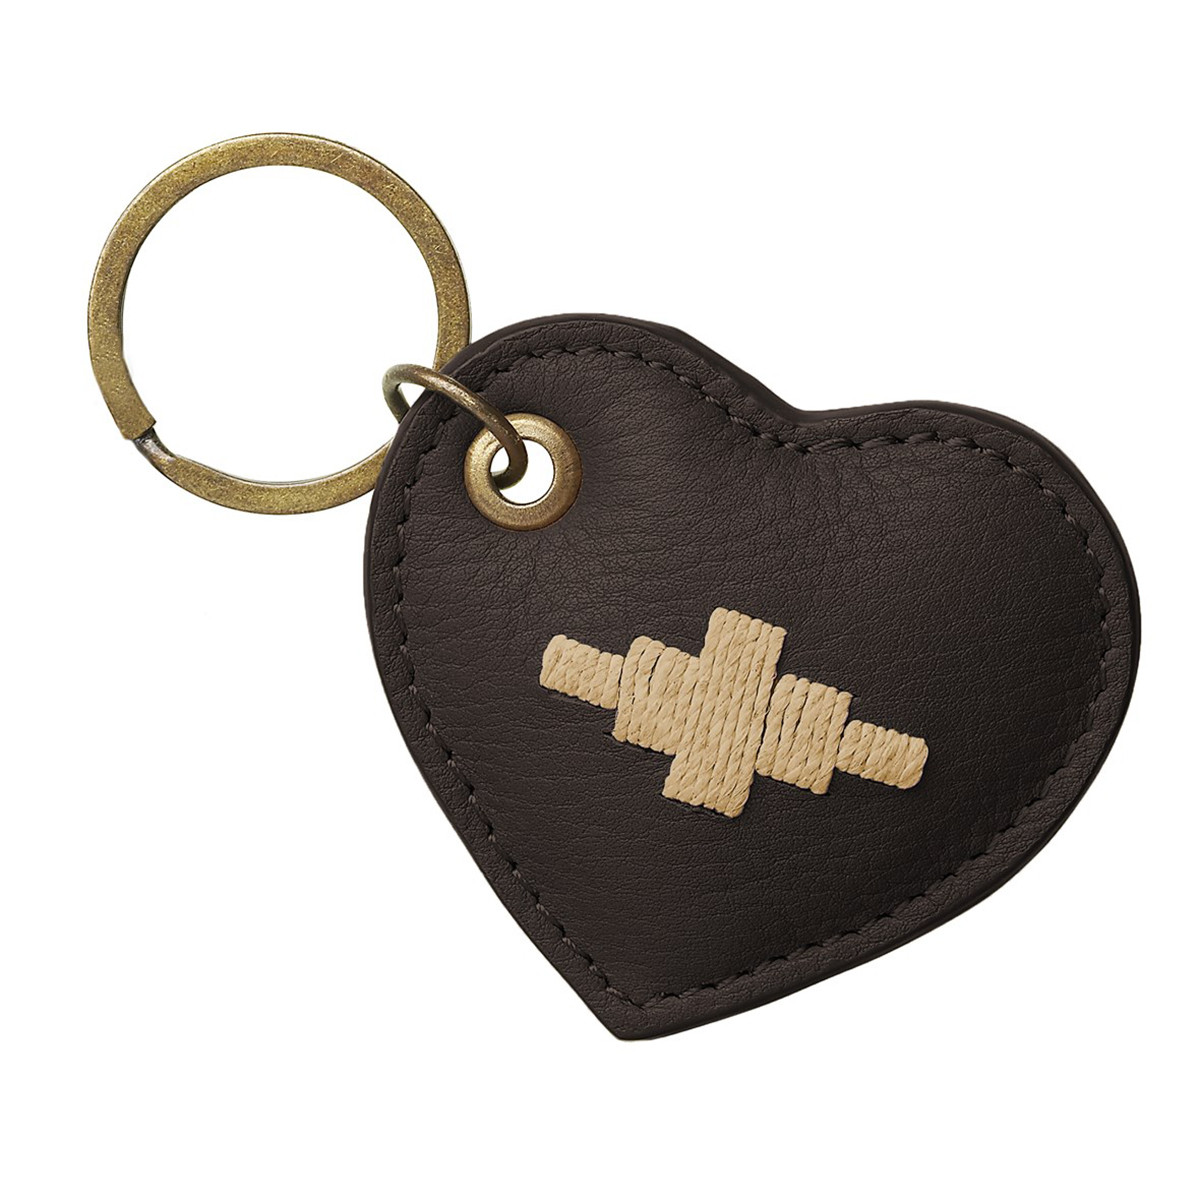 Pampeano Vida Heart Keyring - Brown Leather with Cream Stitching